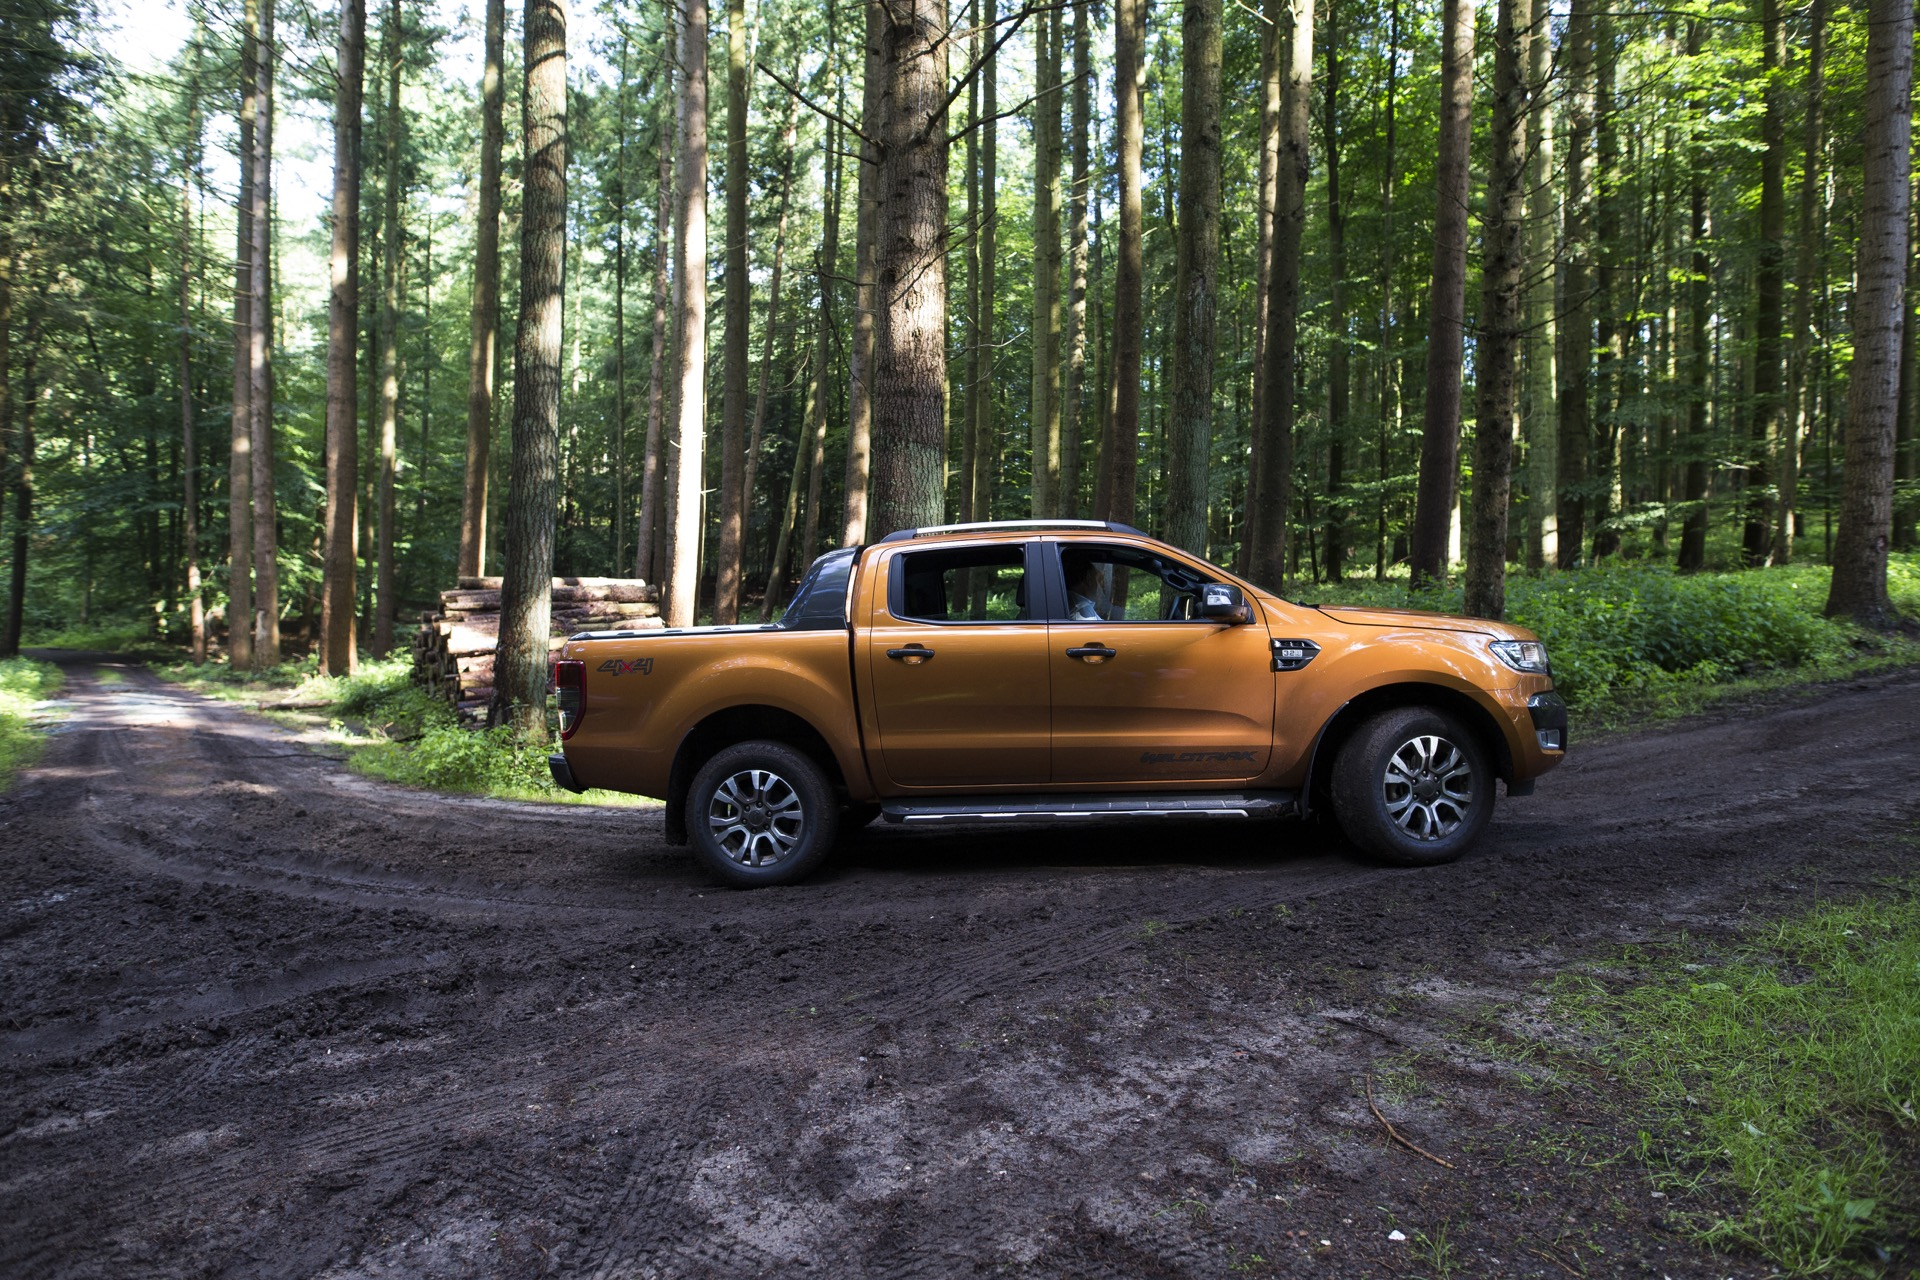 HARDT_Ford_AdventureDays_201642702jaegermagazin jagd Ford Ranger Adventure Days 2016